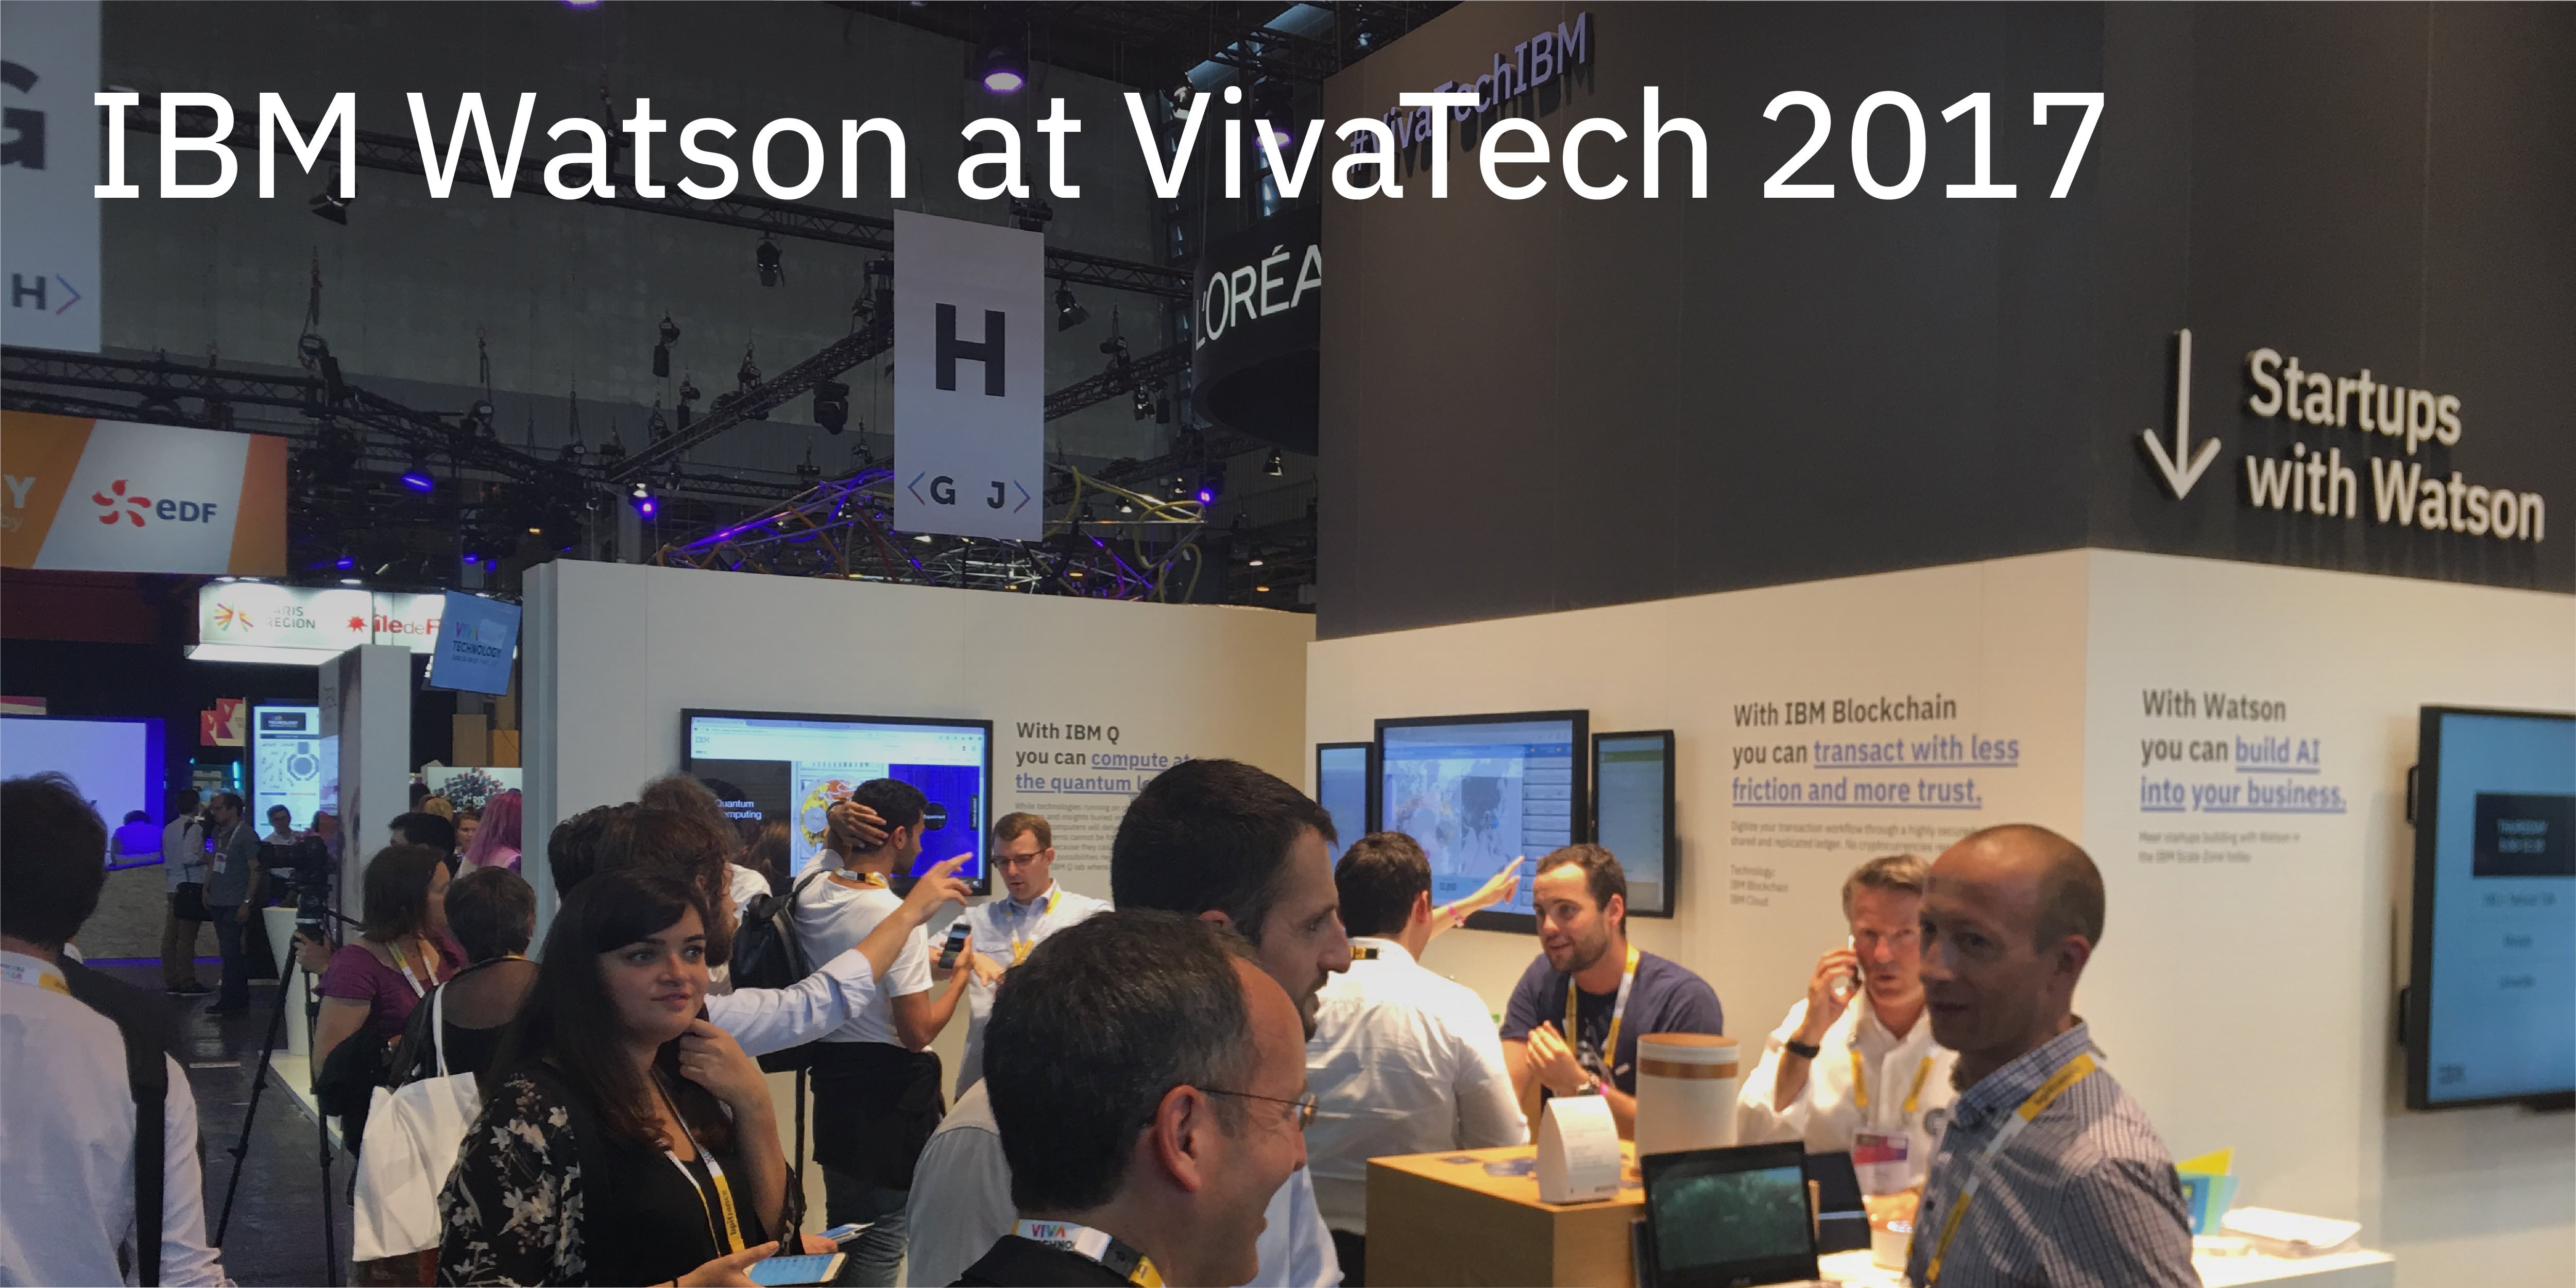 IBM Watson at VivaTech 2017: AI trends, new Watson-powered startups and more